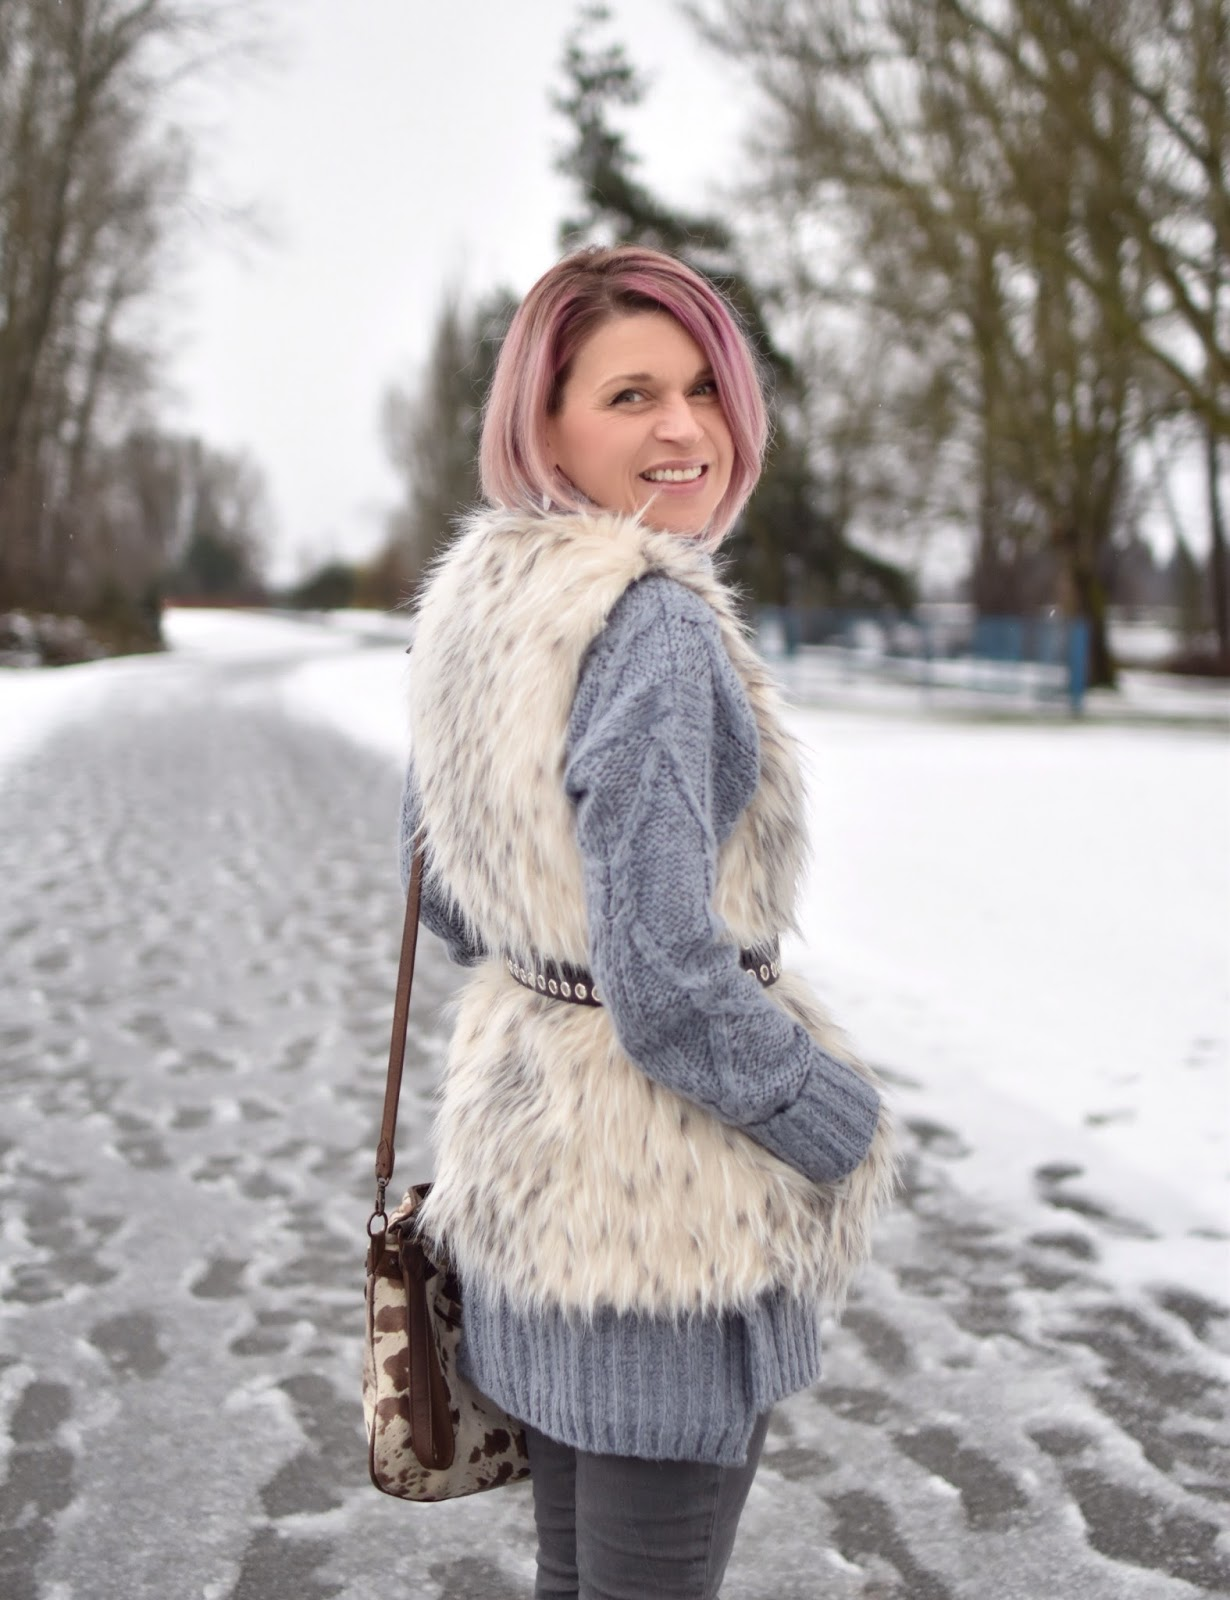 Monika Faulkner outfit inspiration - tunic sweater, belted faux-fur vest, pony-hair bag